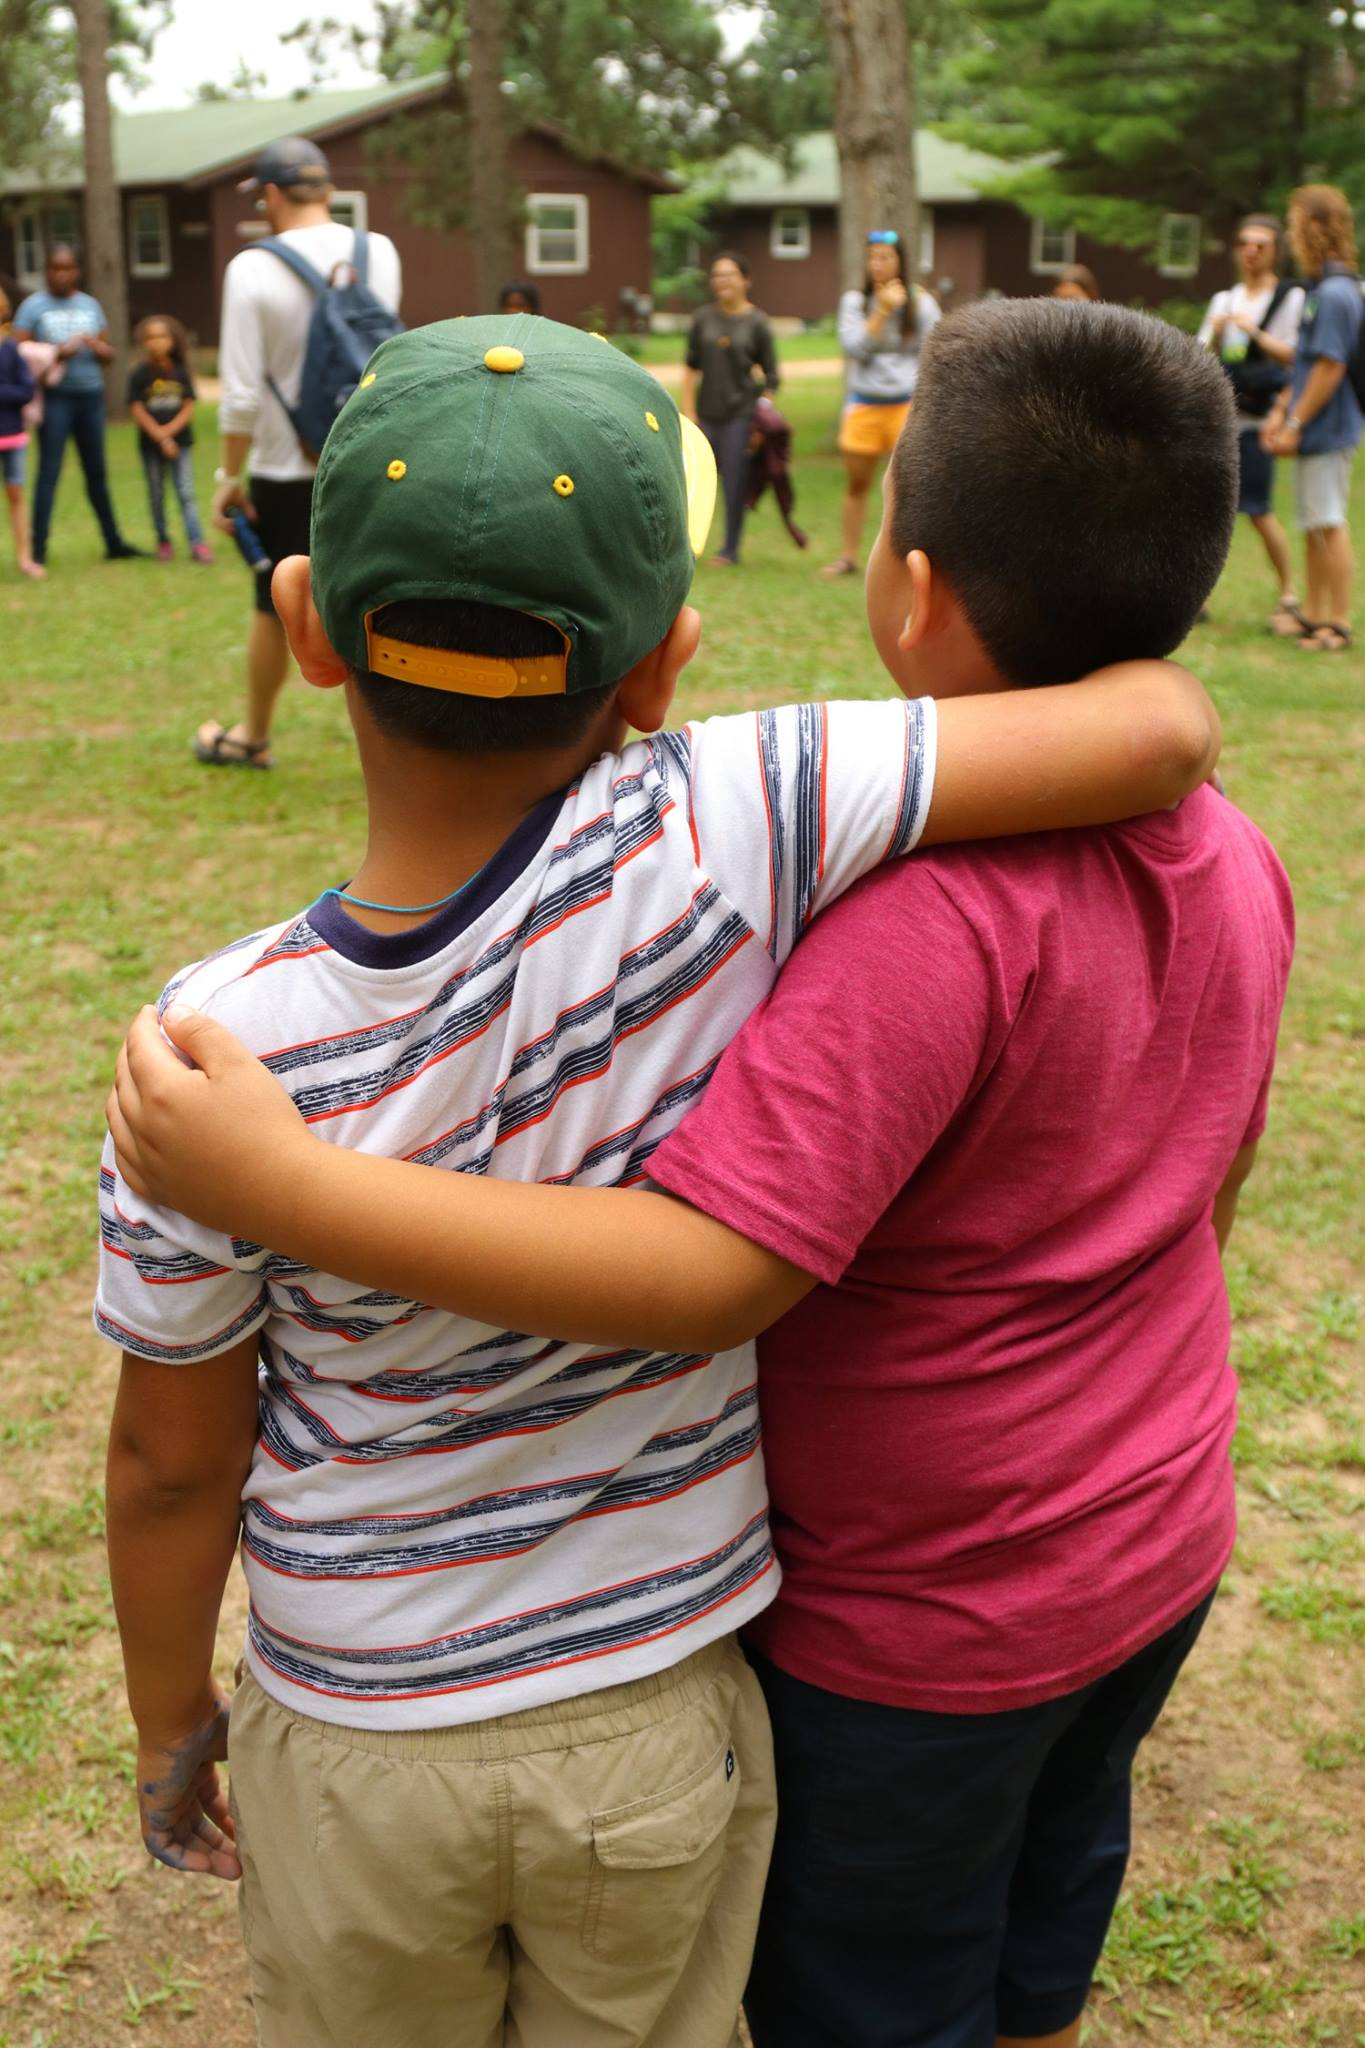 We will start by having tons of fun together at camp. We will play together, learn together, eat together, and share a living space together. We will think and tinker and laugh together.  We will re-encounter each other, one true self to another.